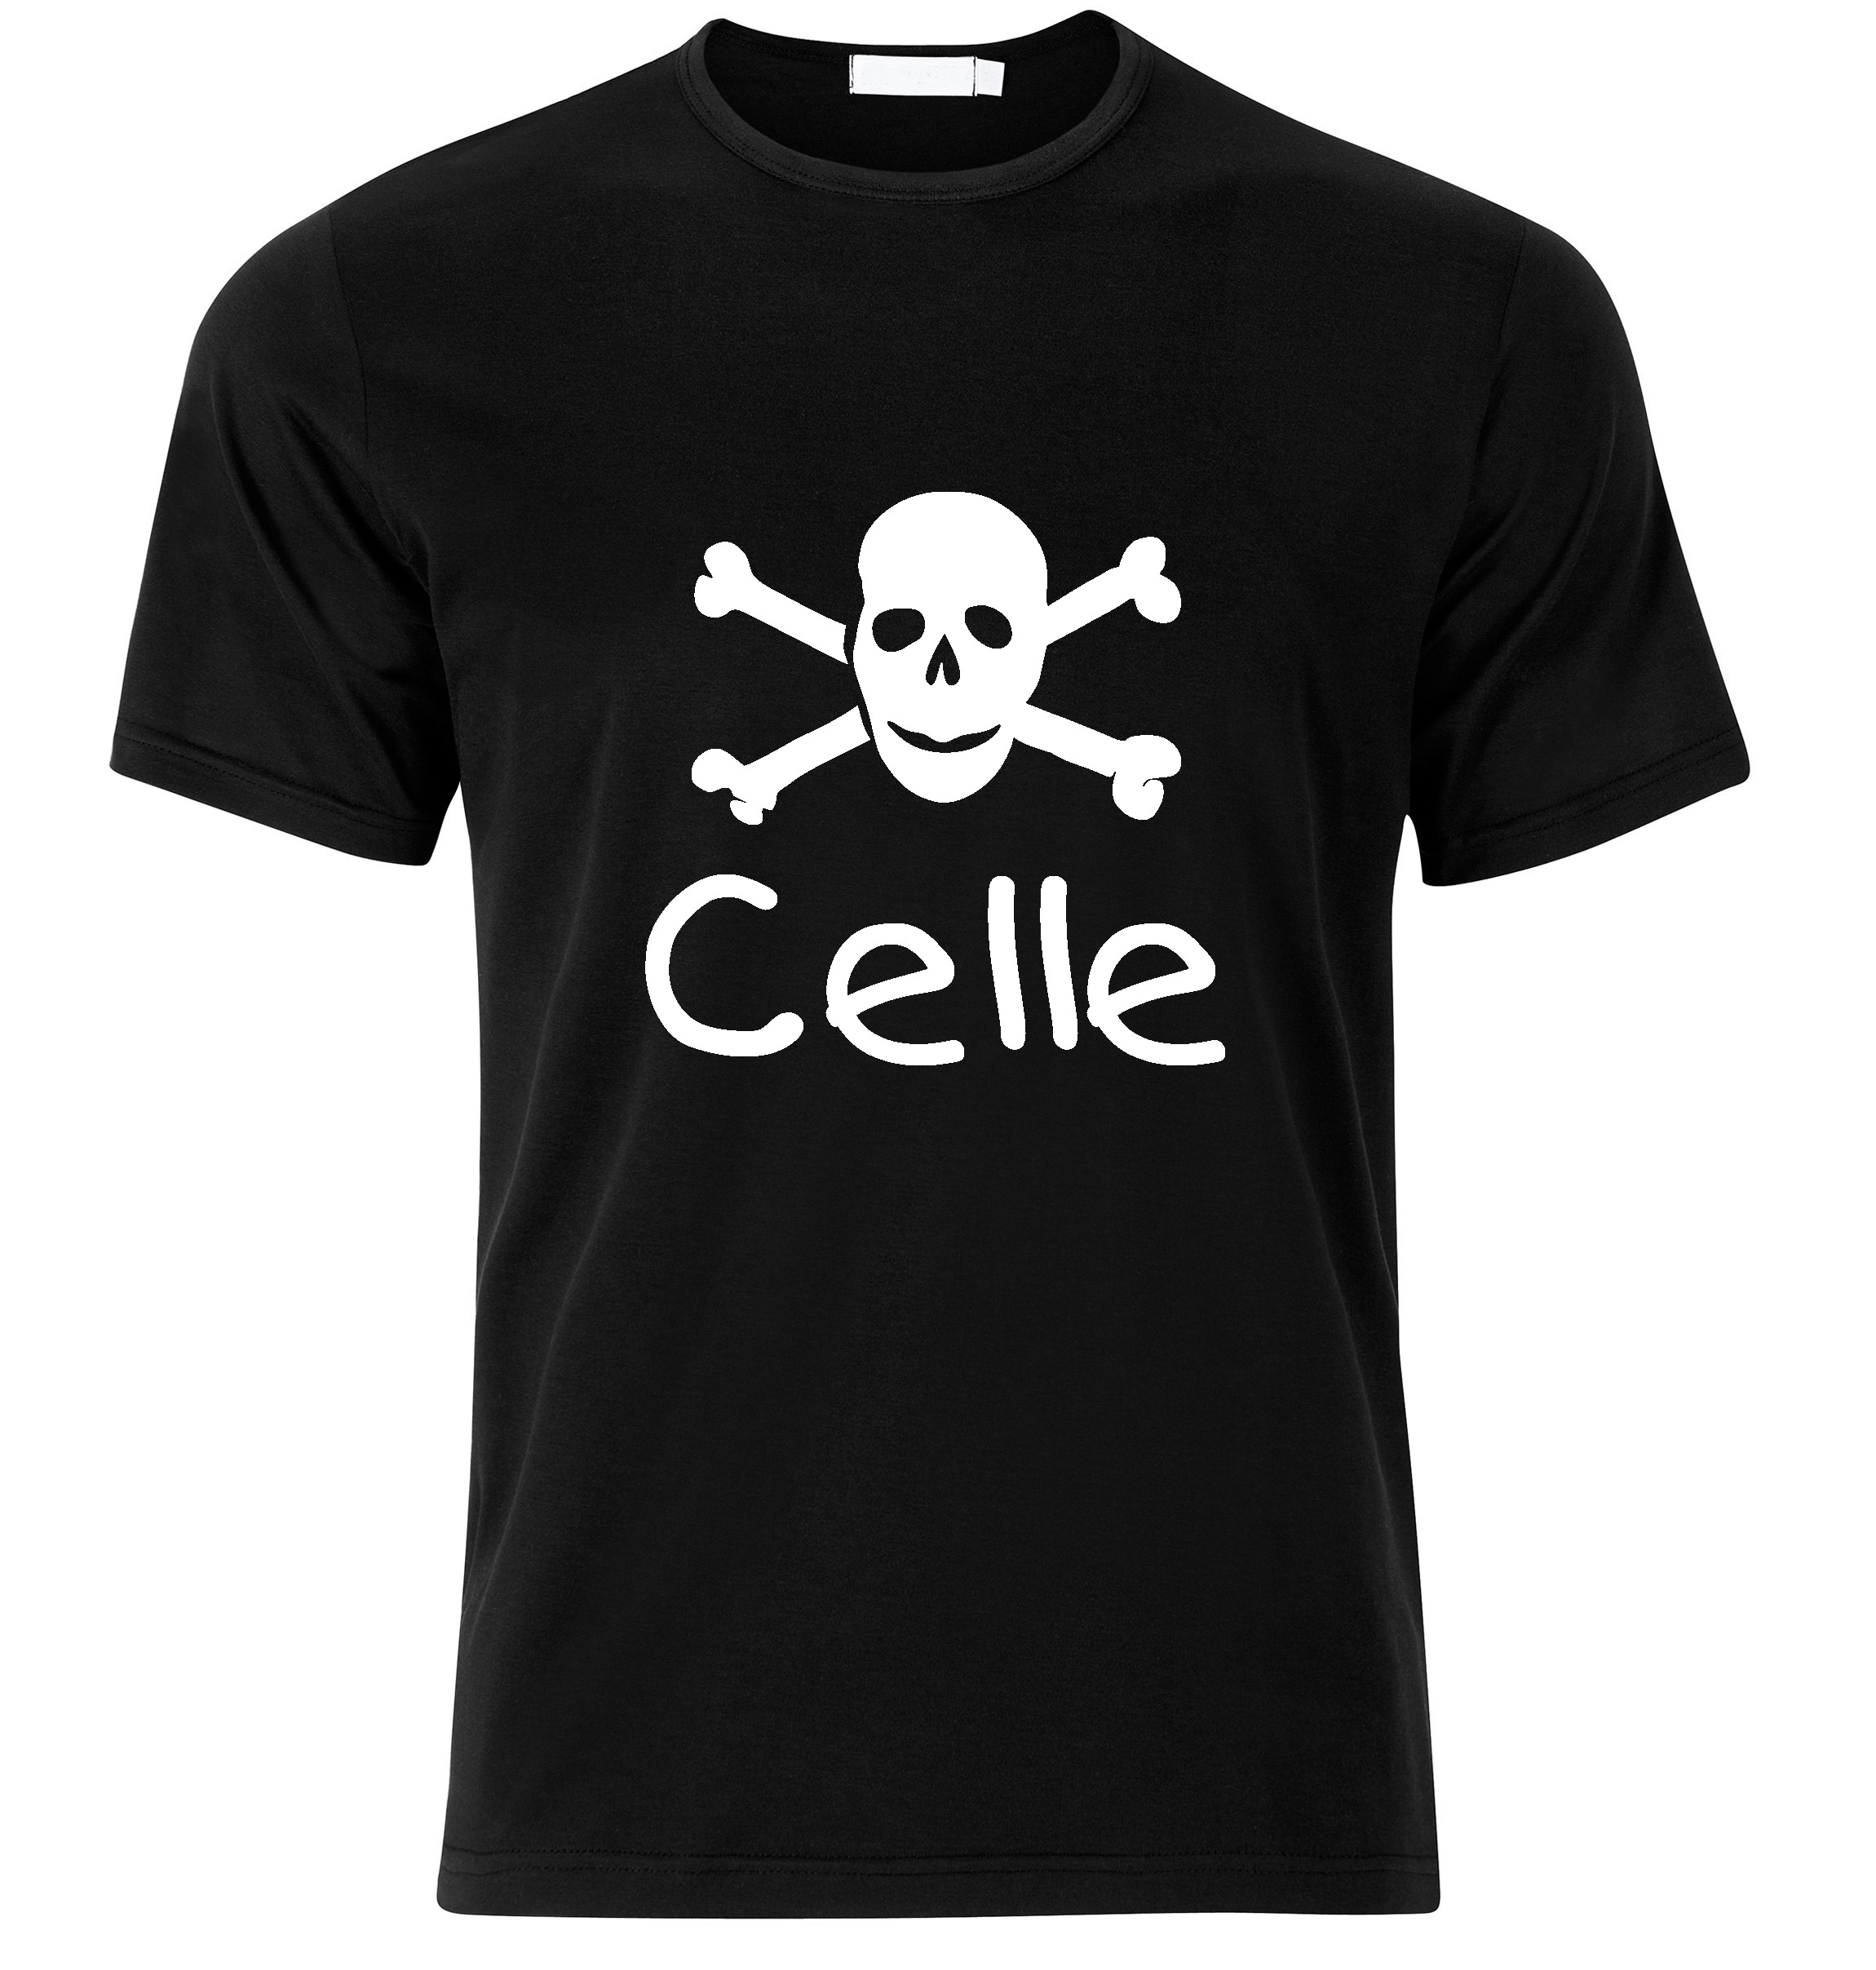 T-Shirt Celle Jolly Roger, Totenkopf